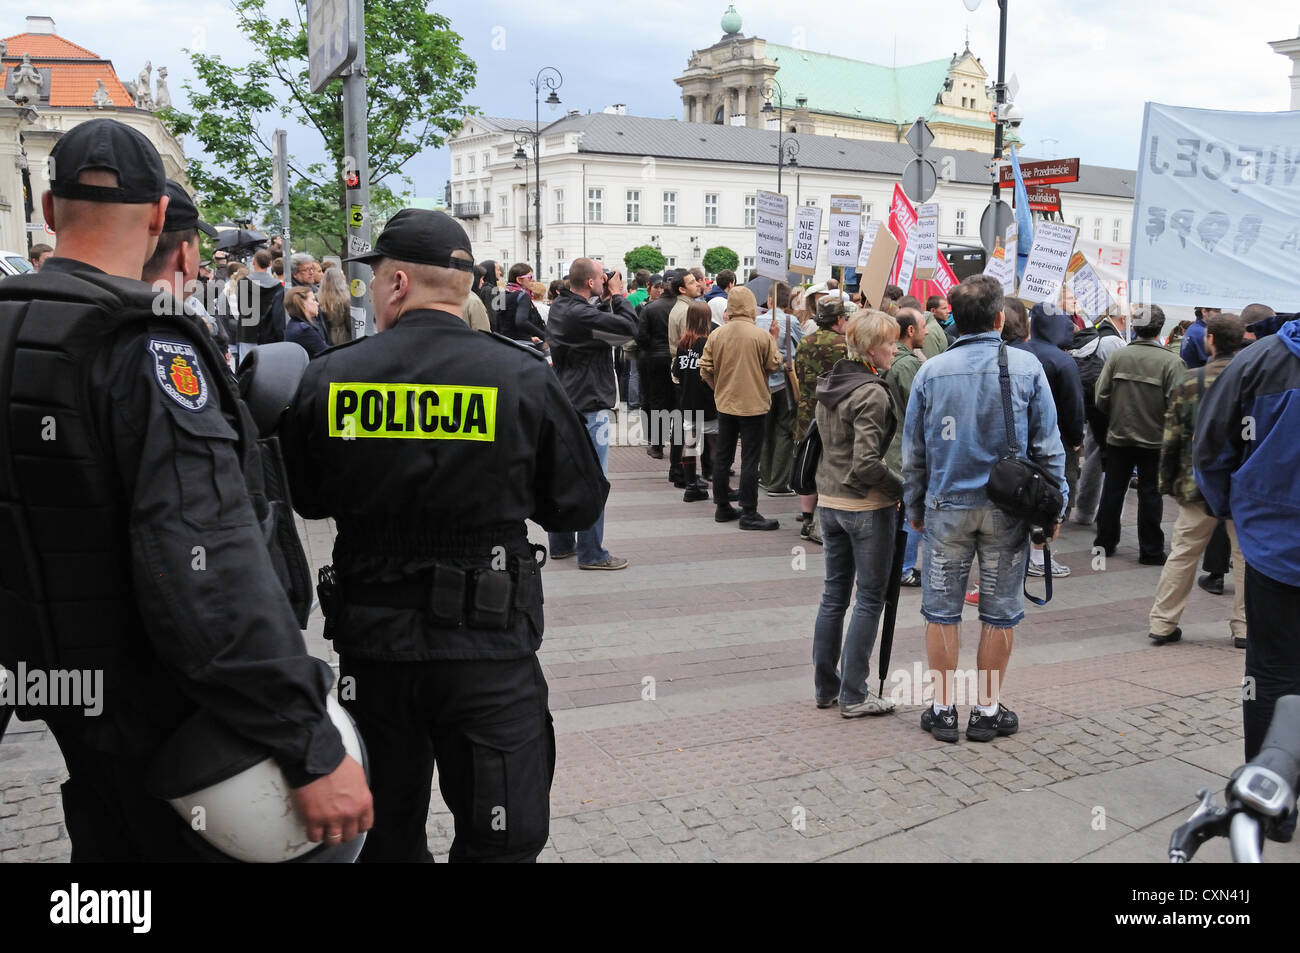 Riot police and protesters - Stock Image